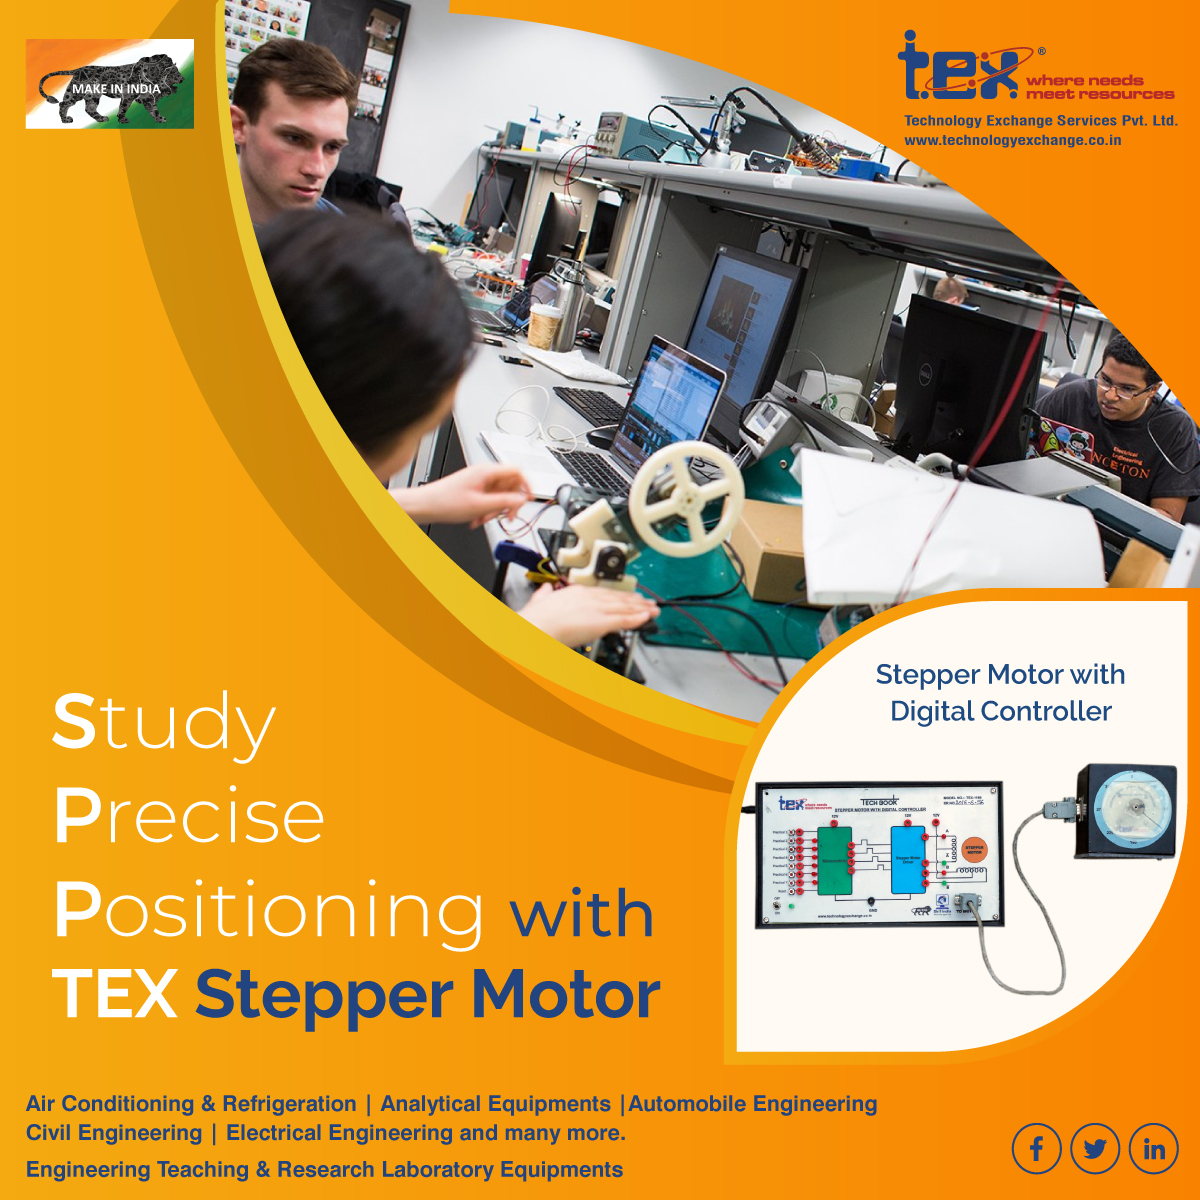 Trust Tex for effortlessly synchronizing with the pulse signal output for getting accurate results.  #steppermotor #digitalcontroller #electronicequipment #electronicsengineering #electronics #engineering #labequipment #laboratoryequipments #equipment